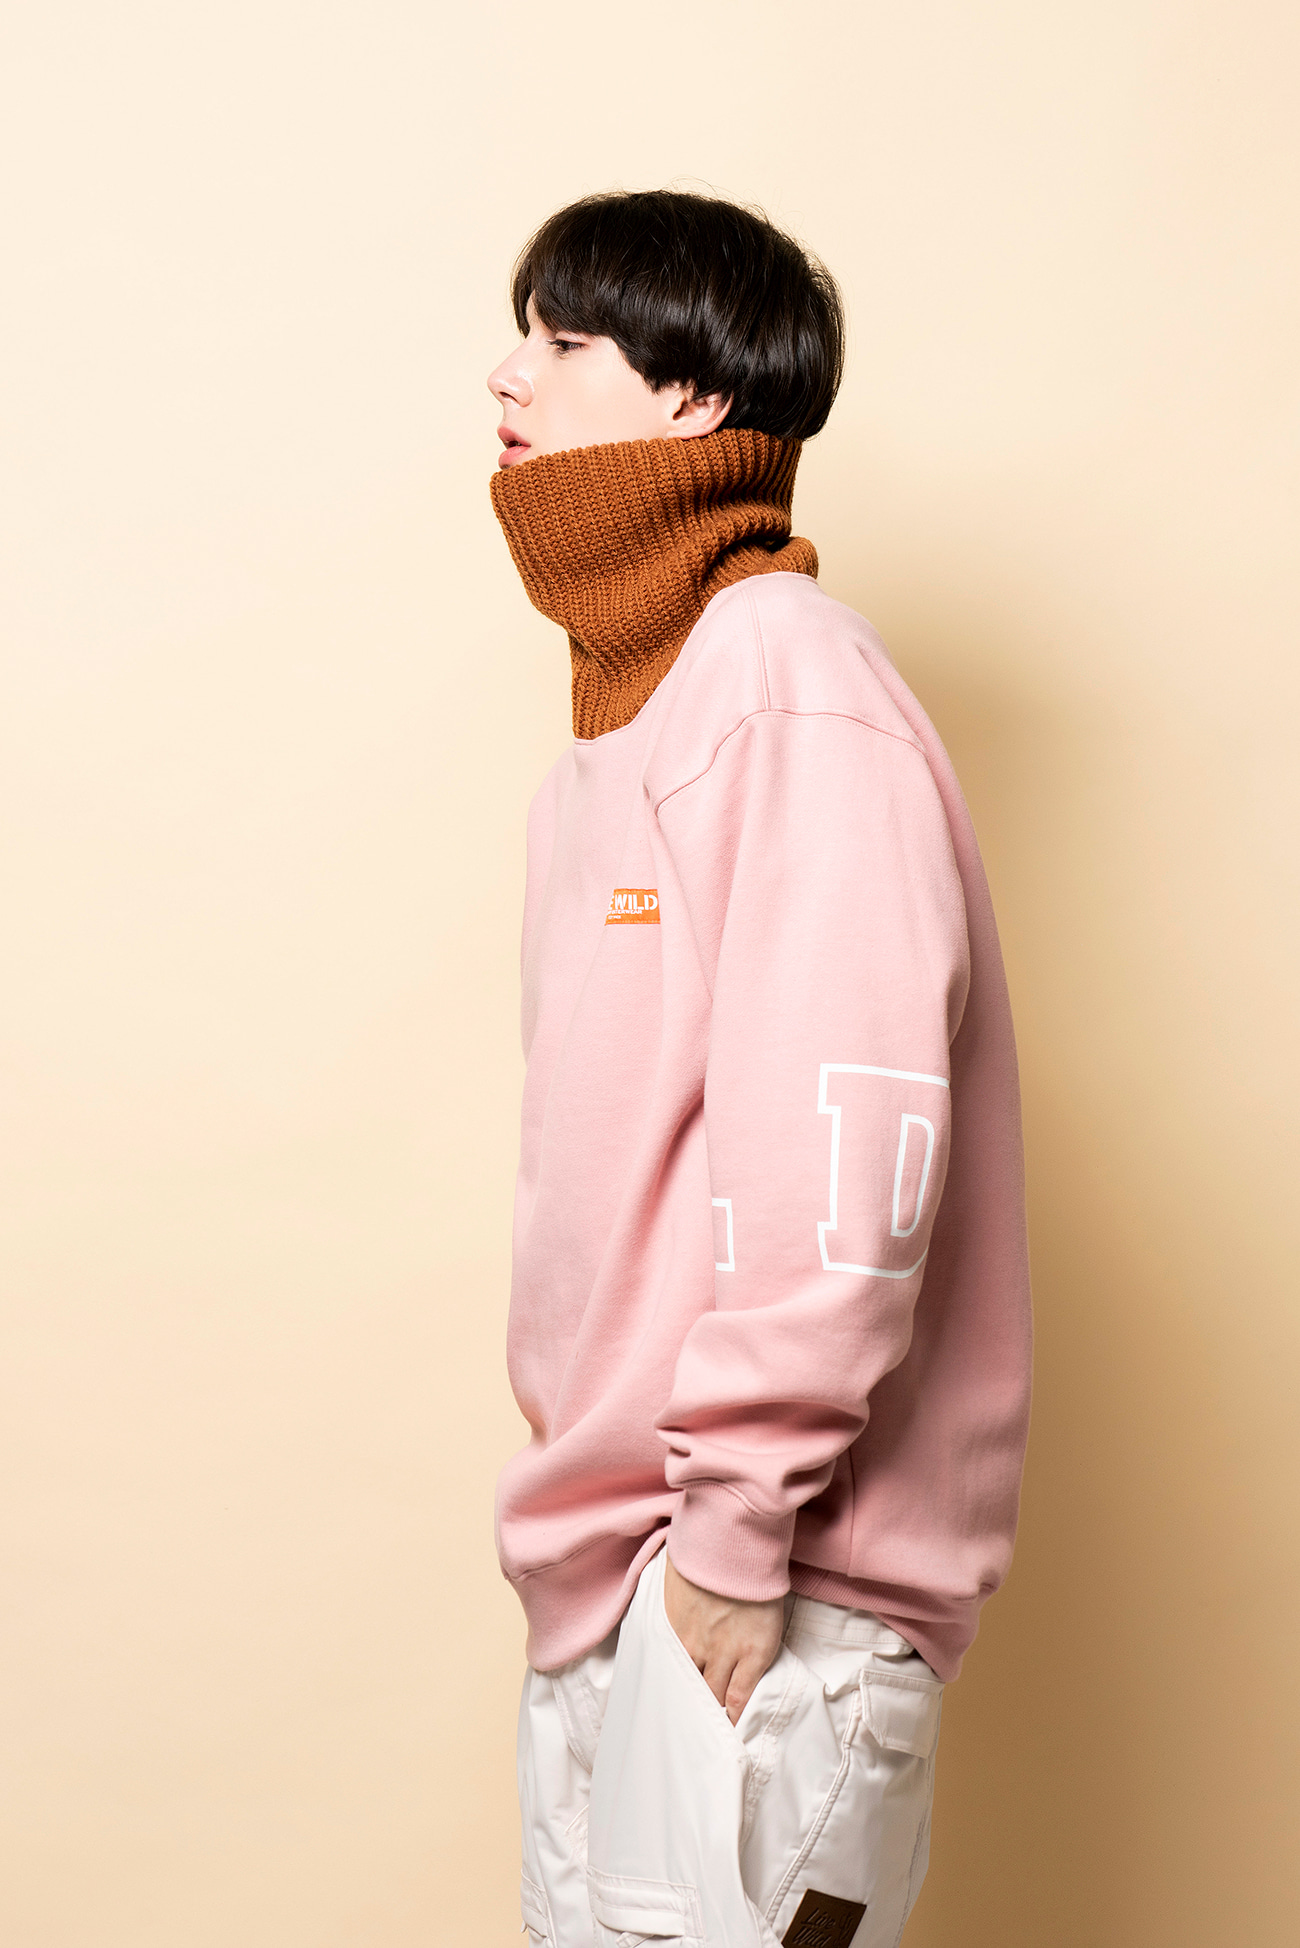 KNIT TURTLE neck - pinkHOLIDAY OUTERWEAR